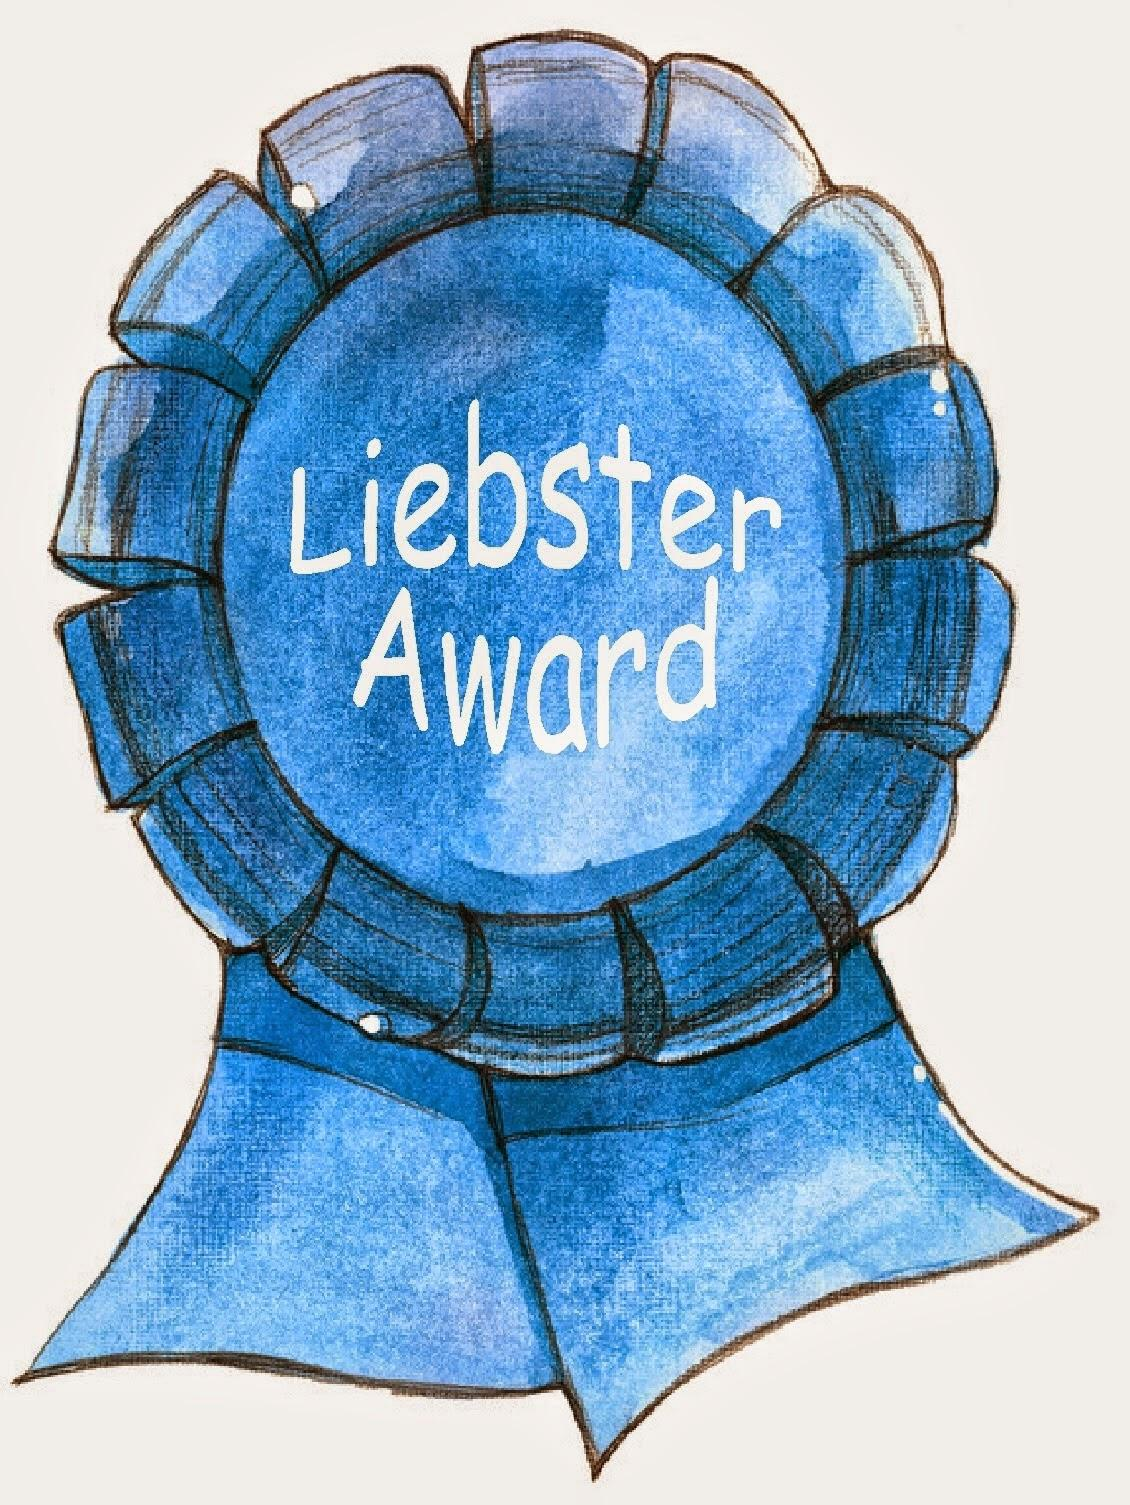 #Liebster Award